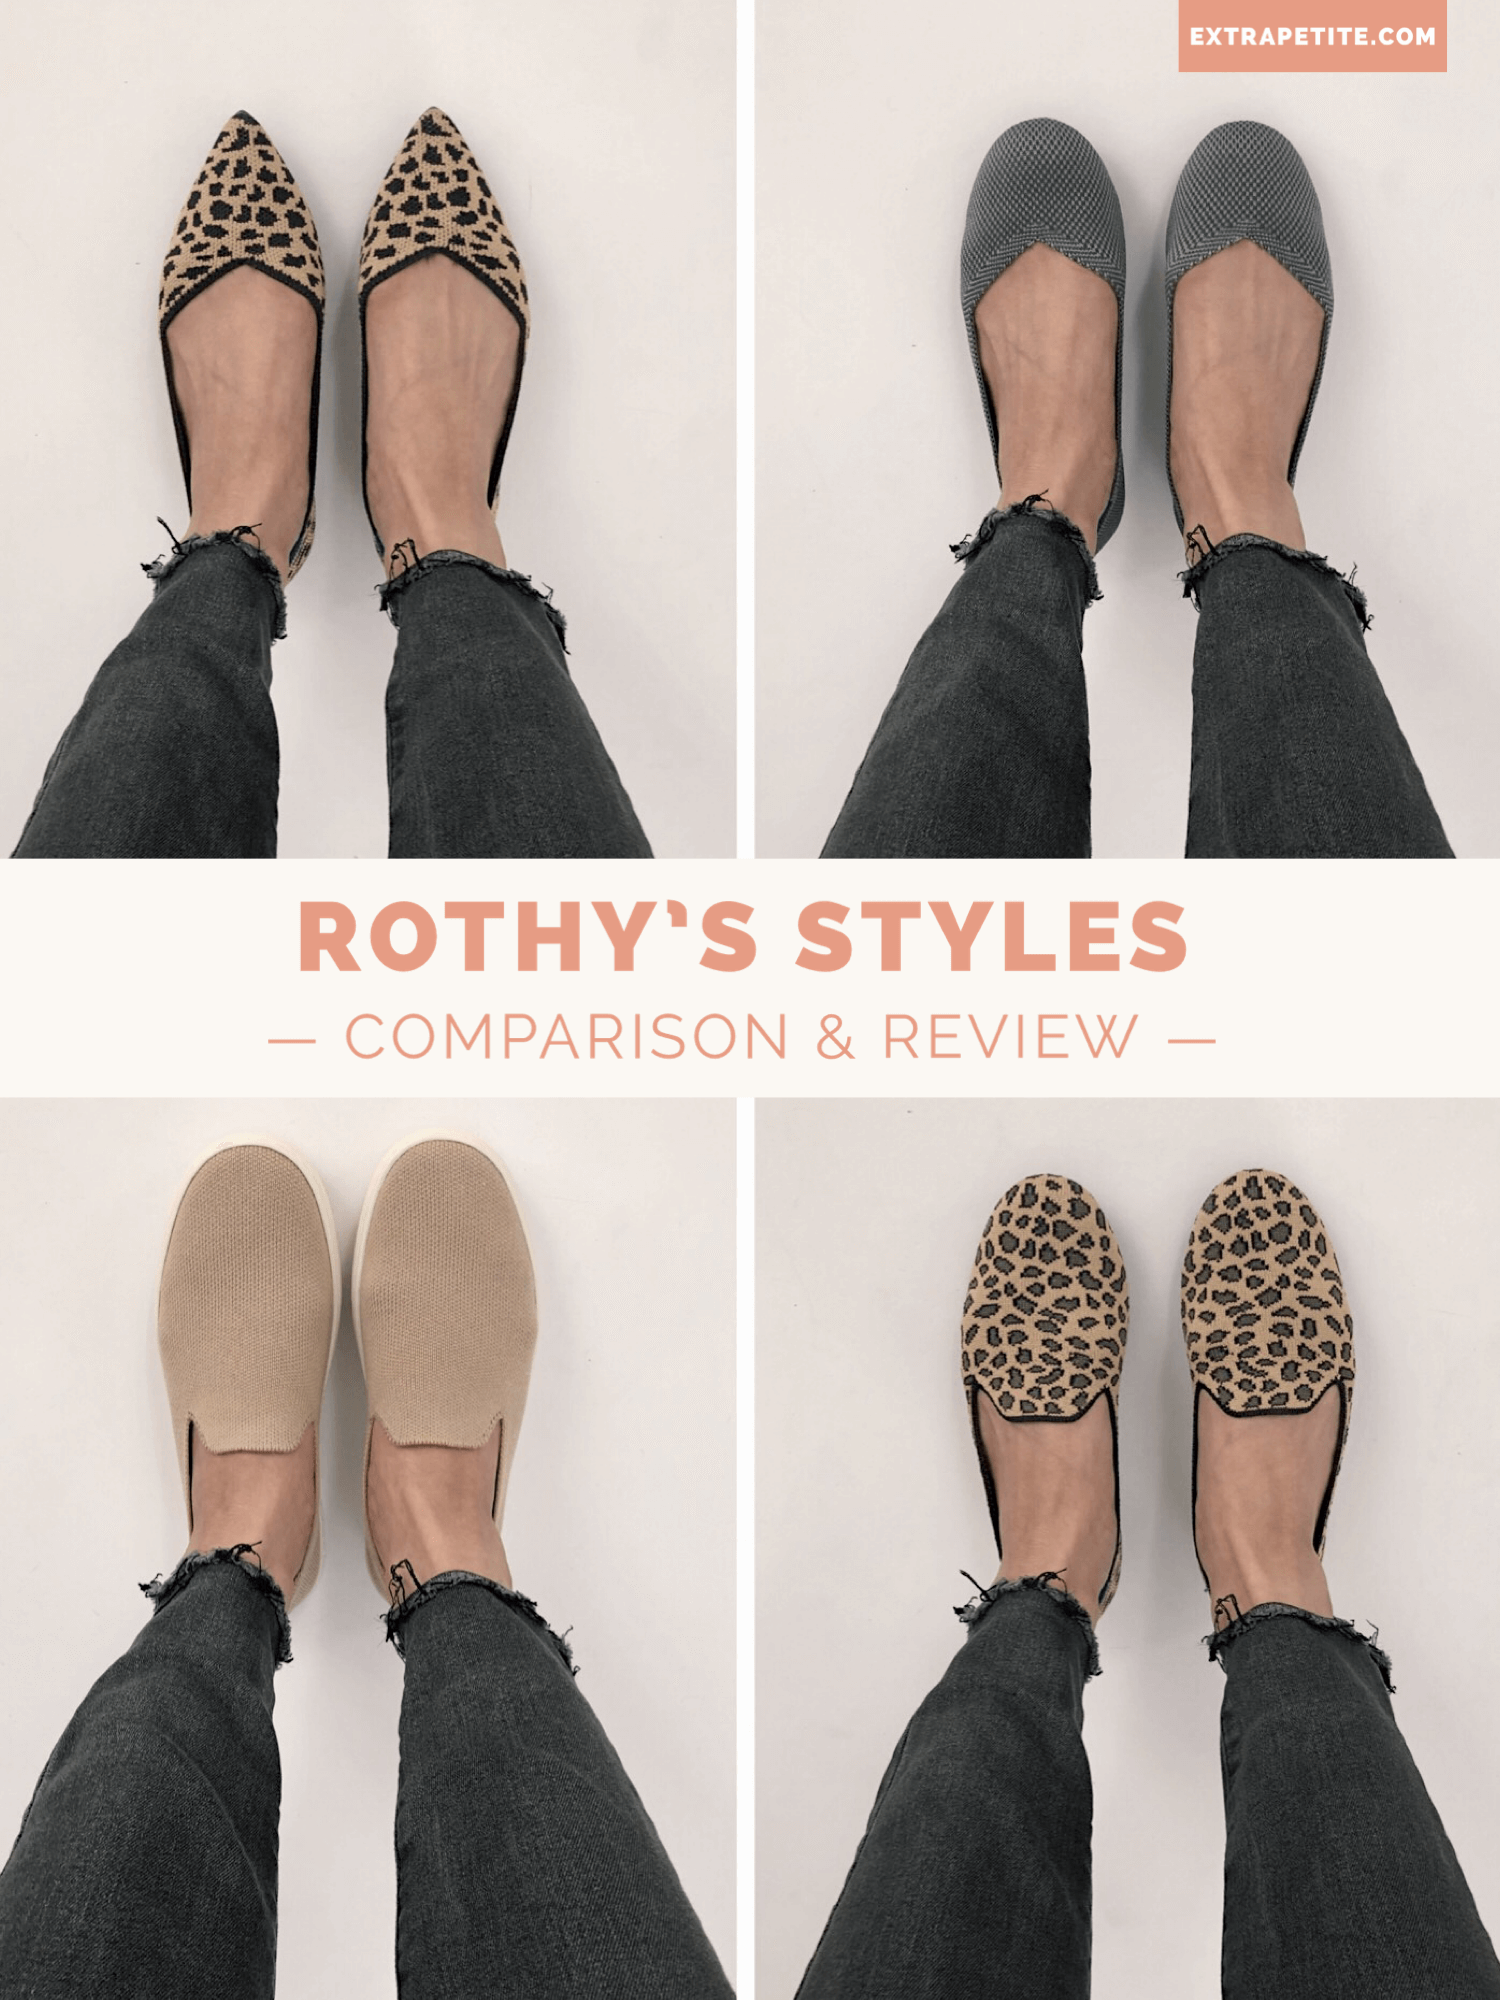 Rothy's styles reviews and comparison